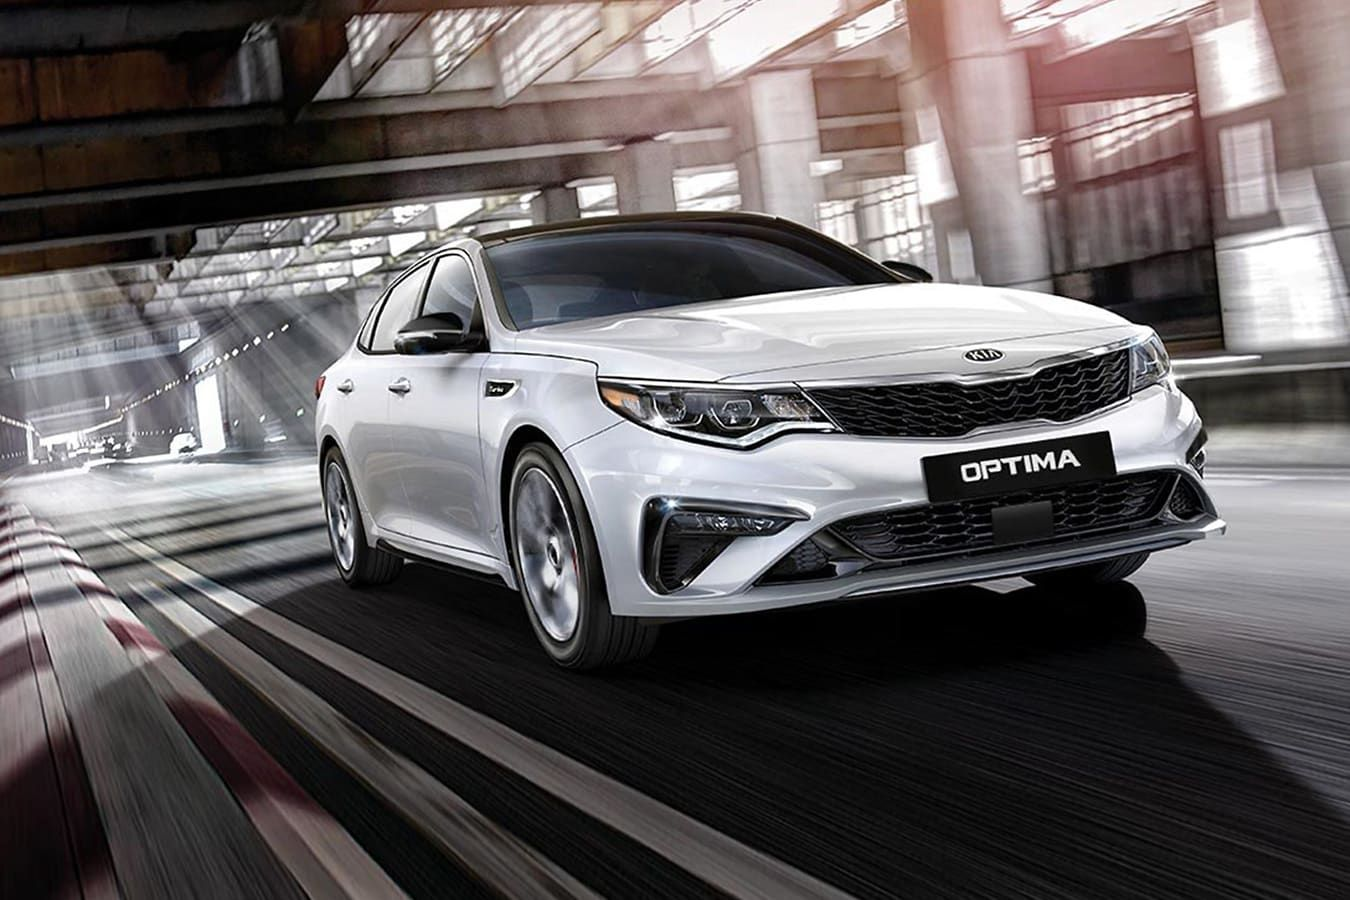 Here Are Some Highlights Of The 2020 Kia Optima That S Here At Our Dealership Kia Optima Motocikl